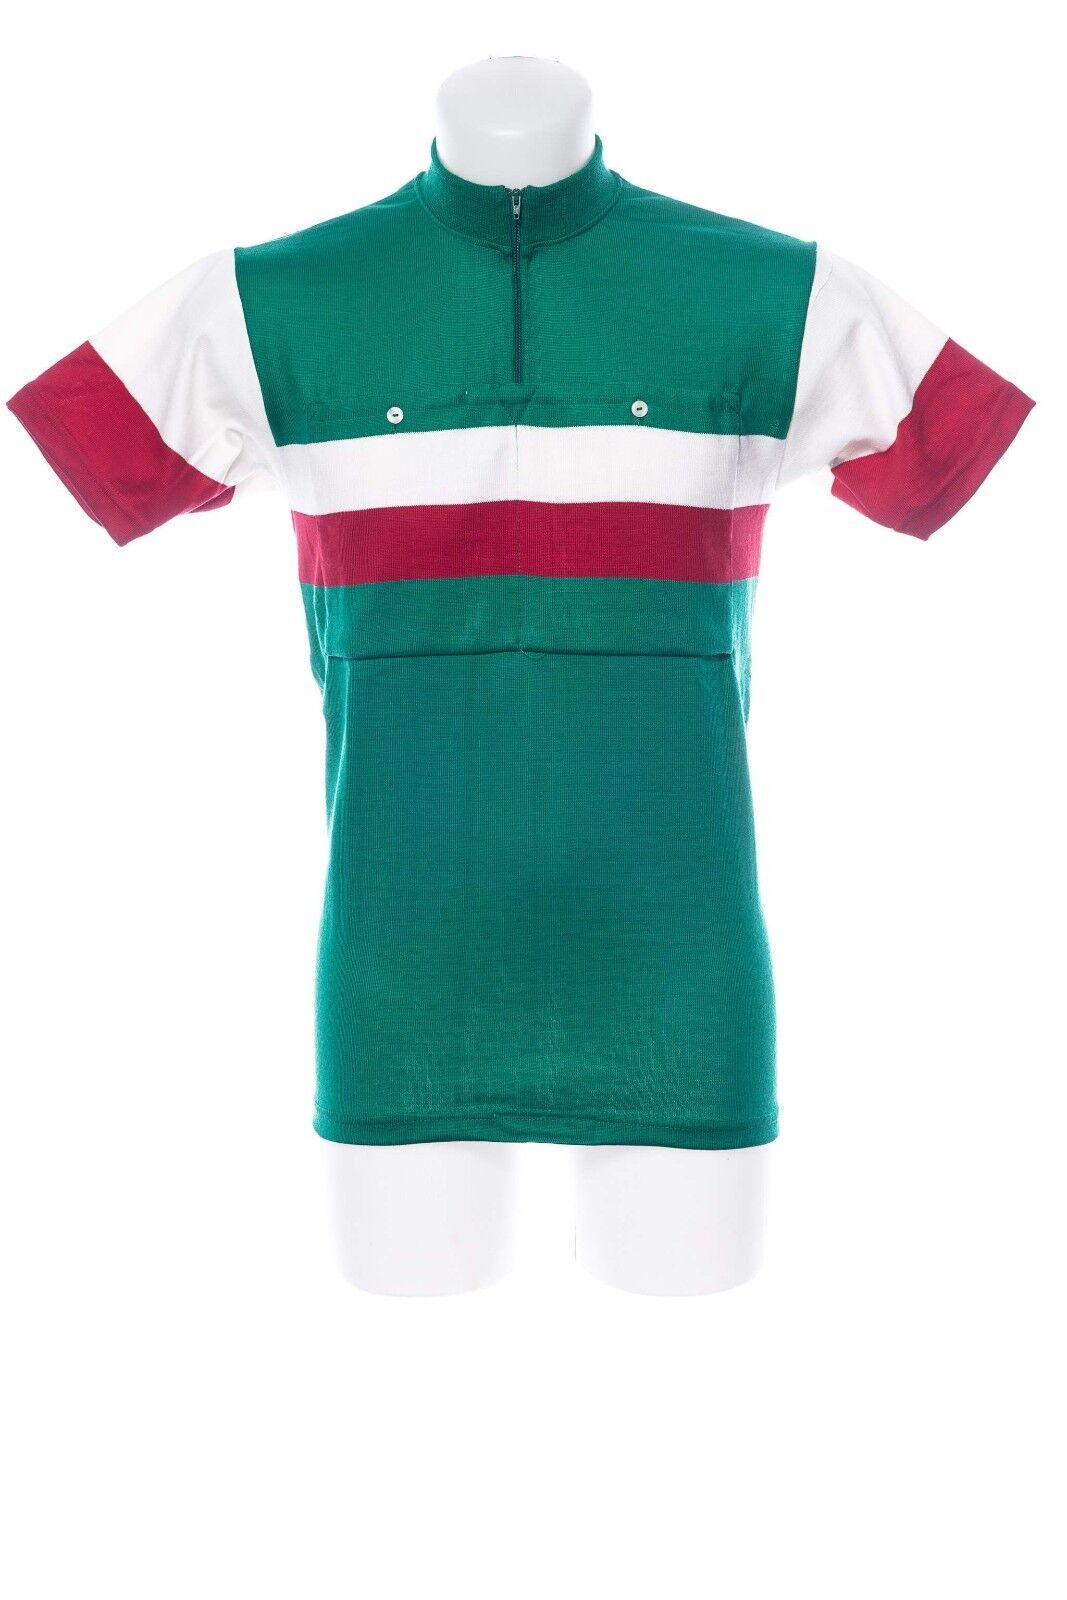 Italian National Vintage Jersey Tour De France 1958